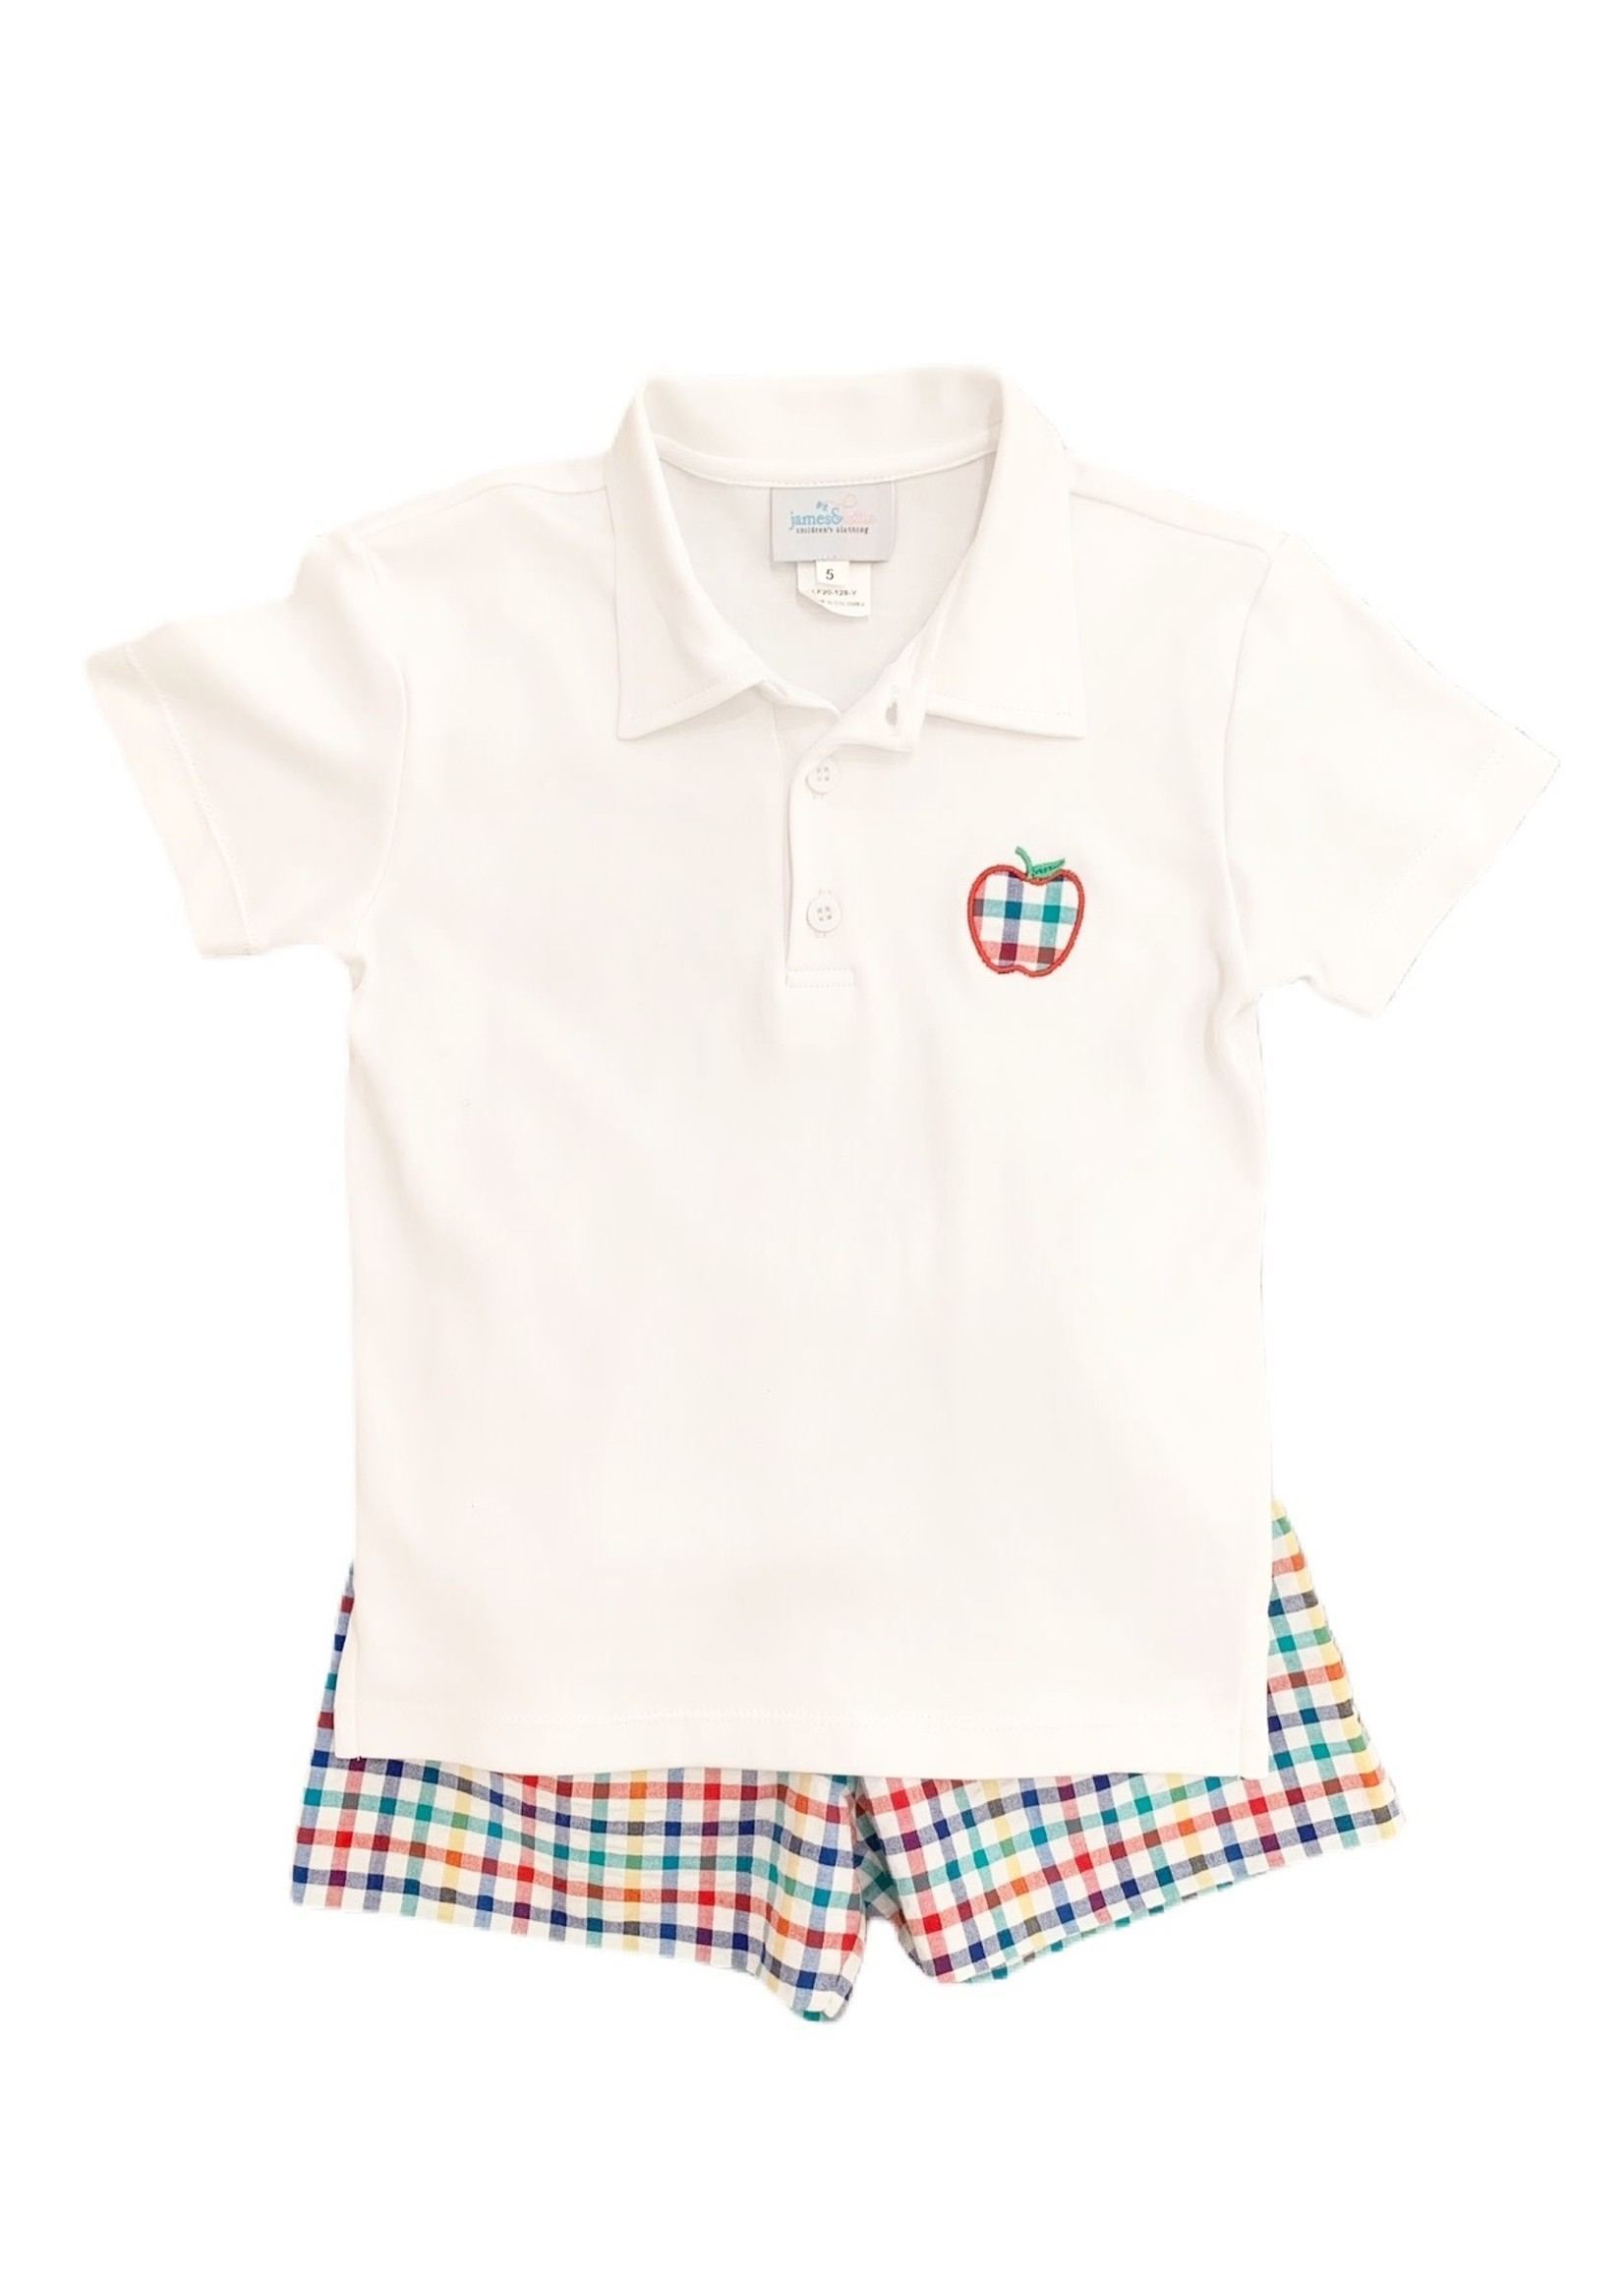 james and lottie White Polo Apple